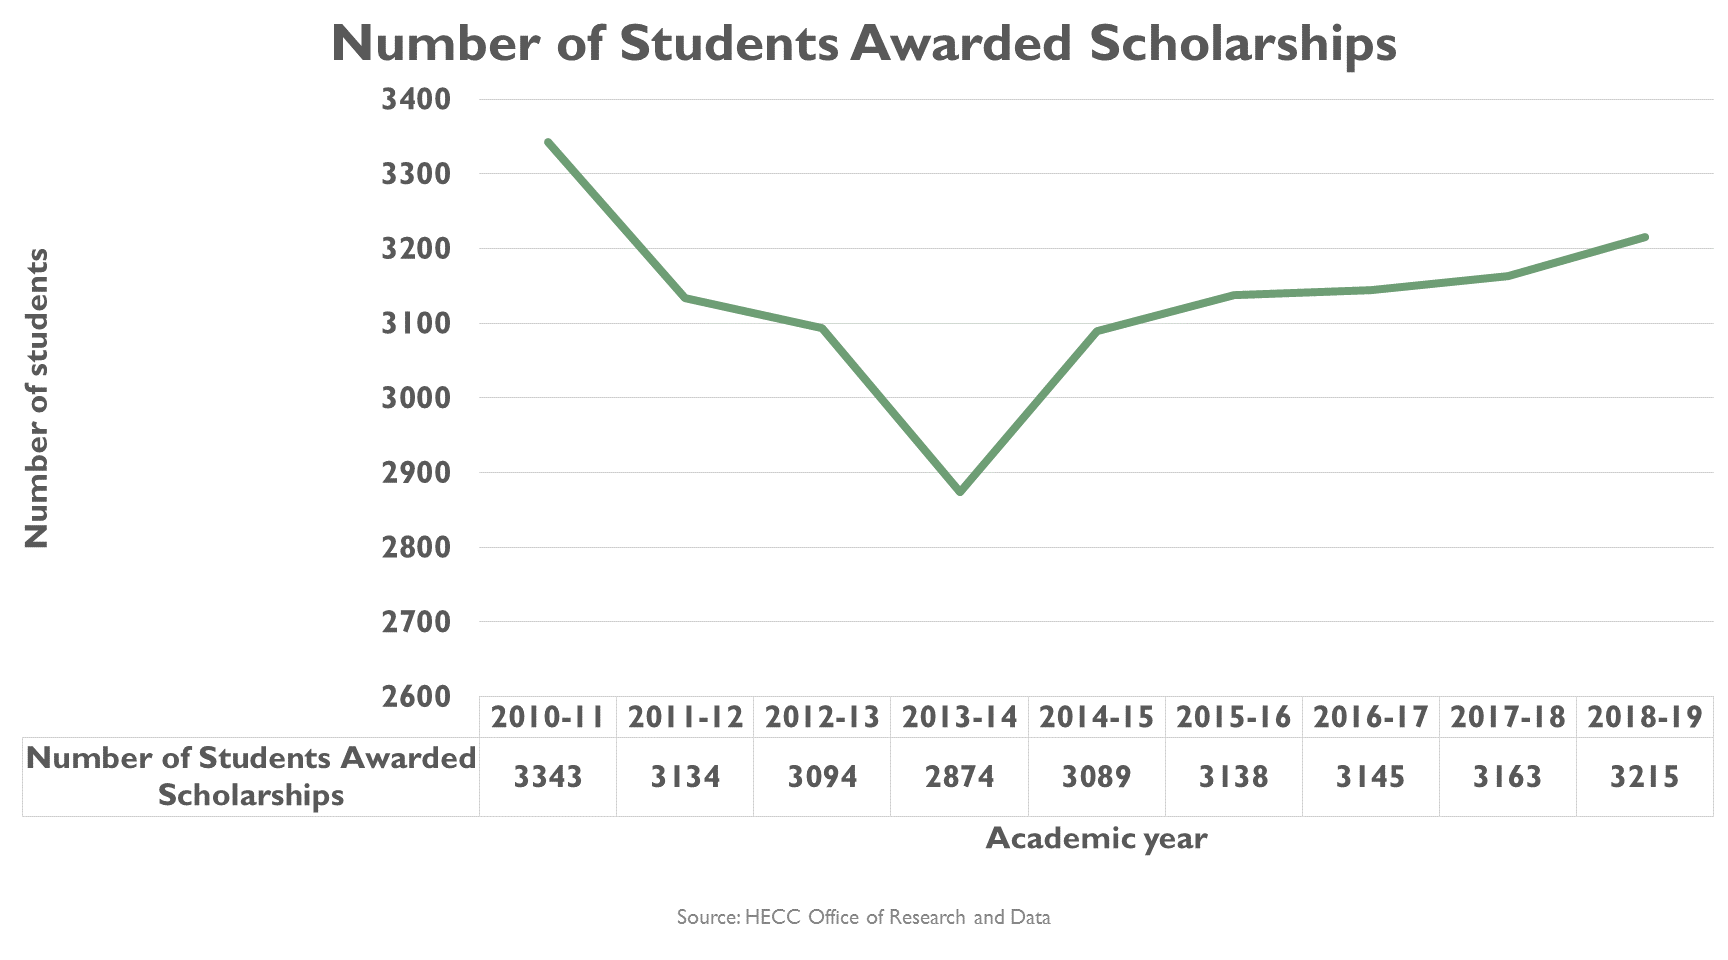 OSAC scholarship student data over time